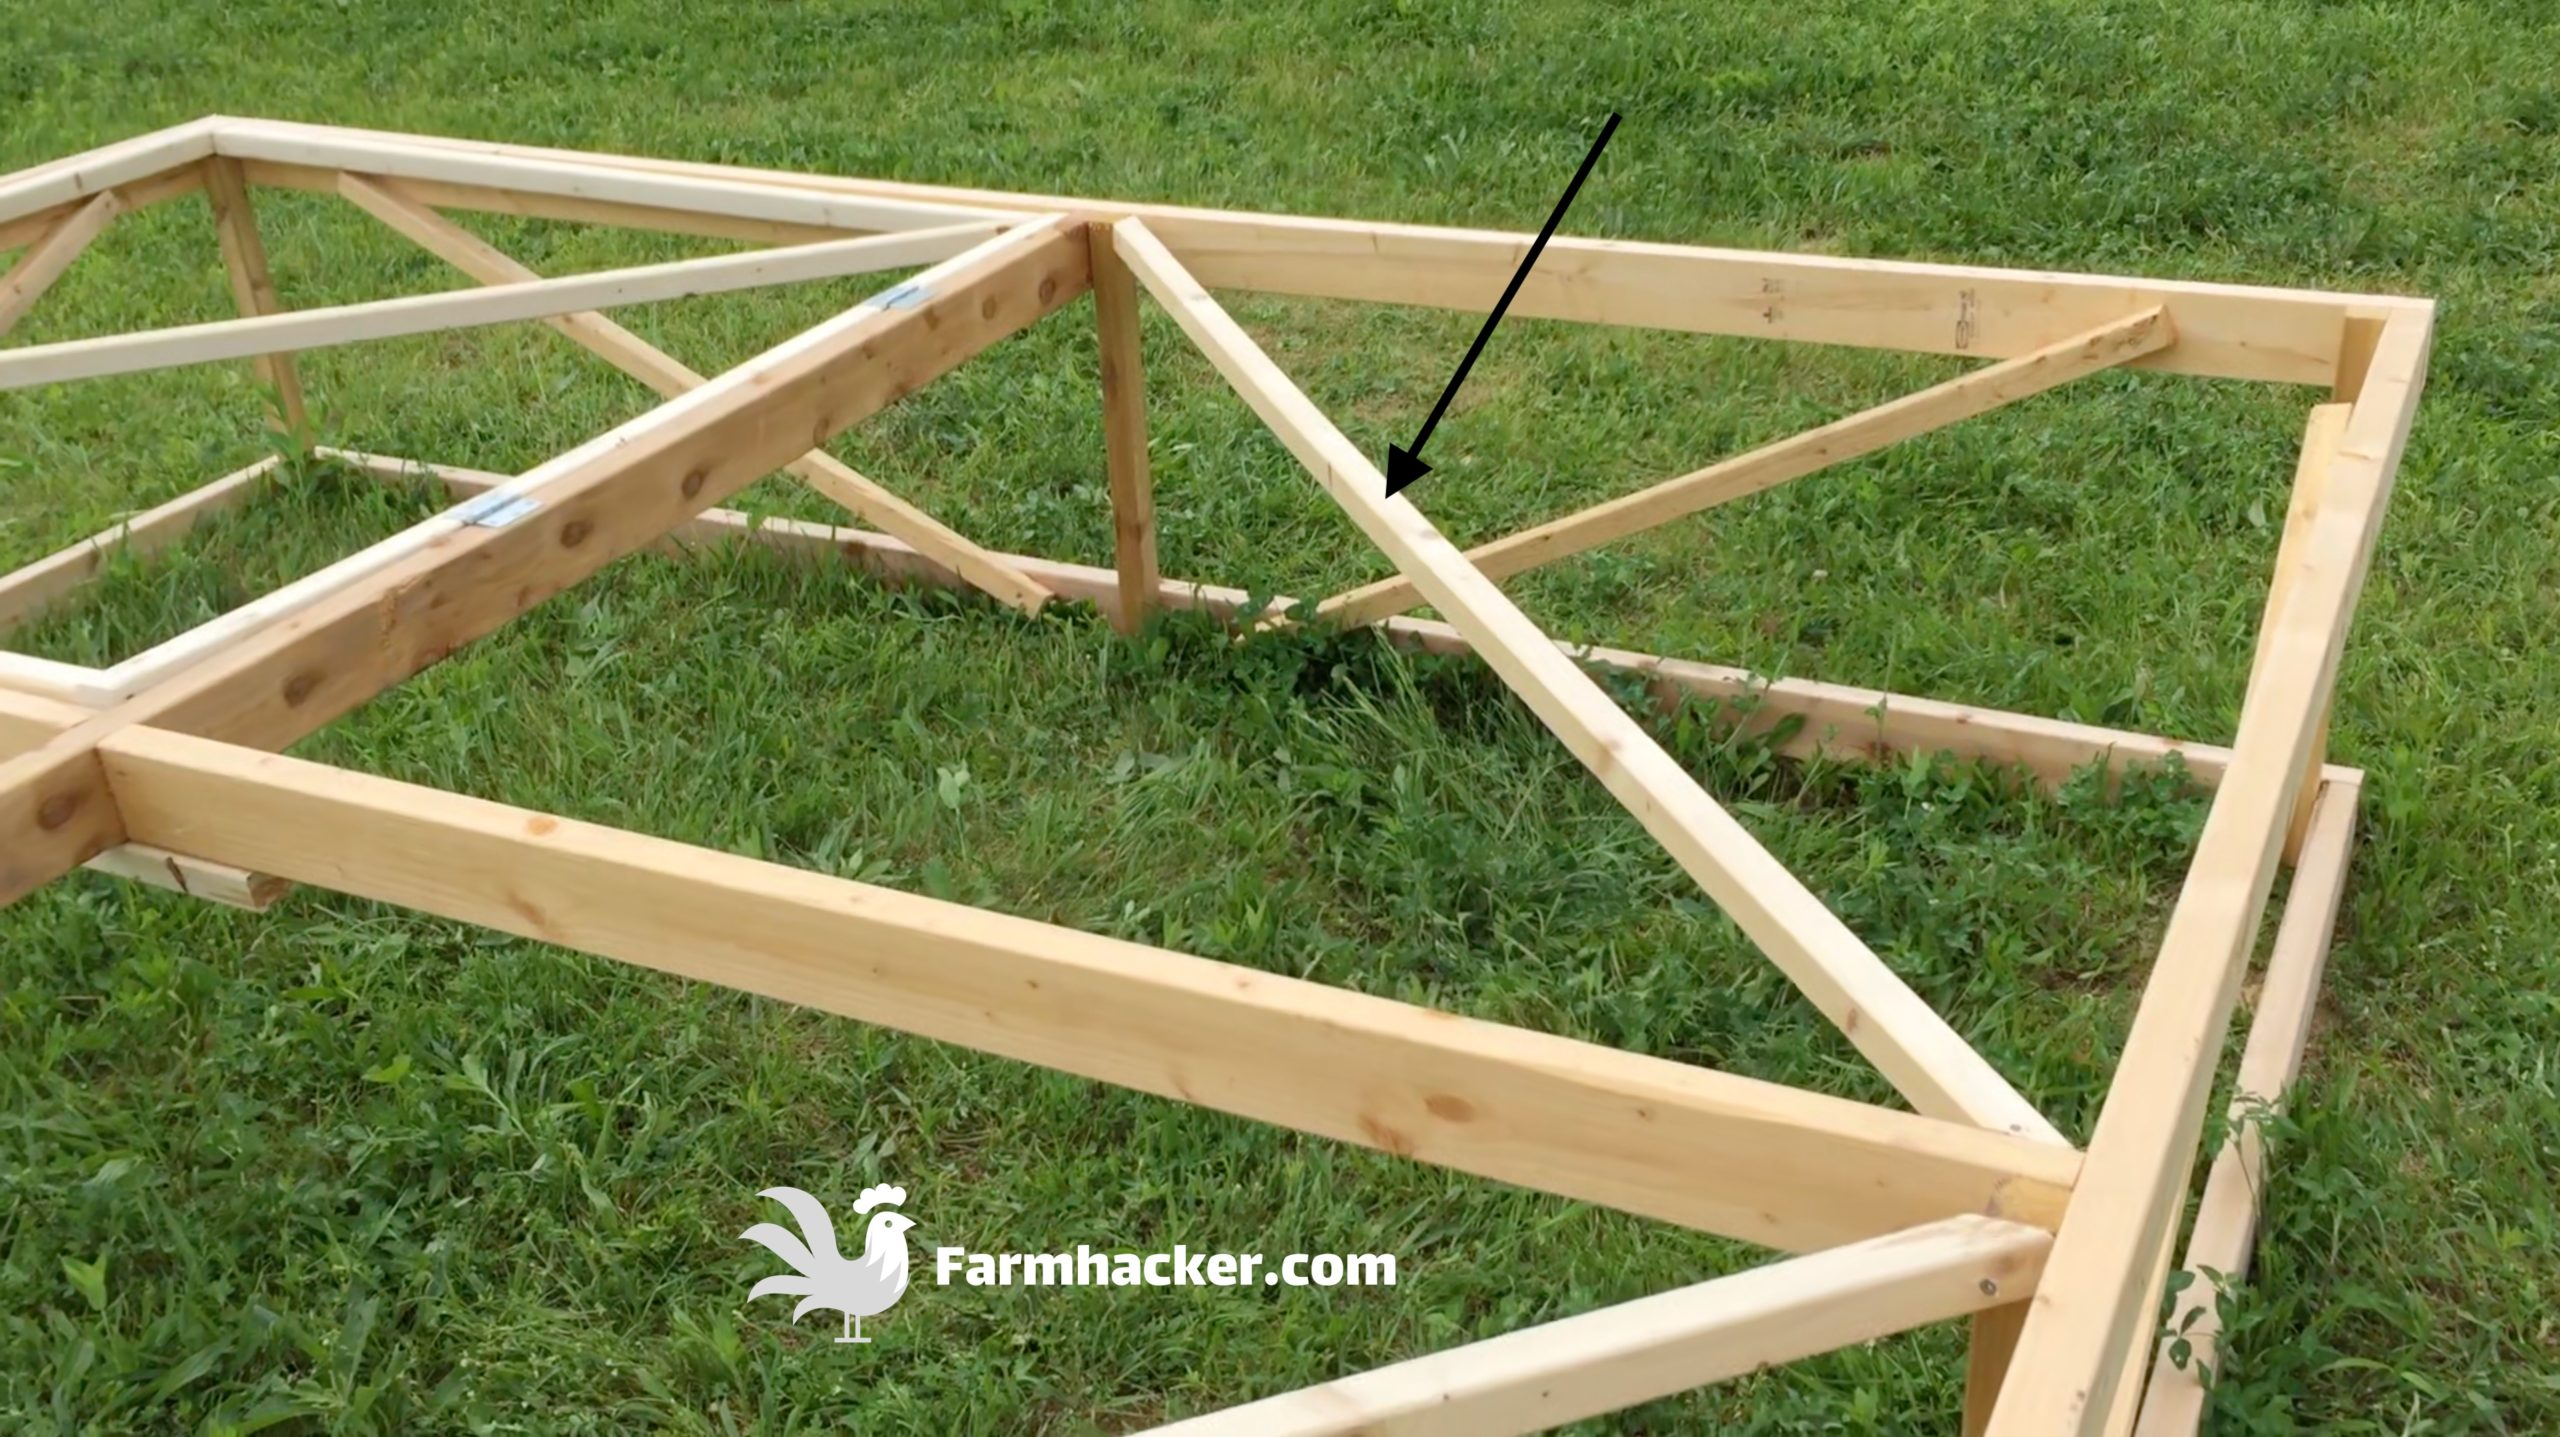 How to Build a Joel Salatin Style Chicken Tractor Step 2.4